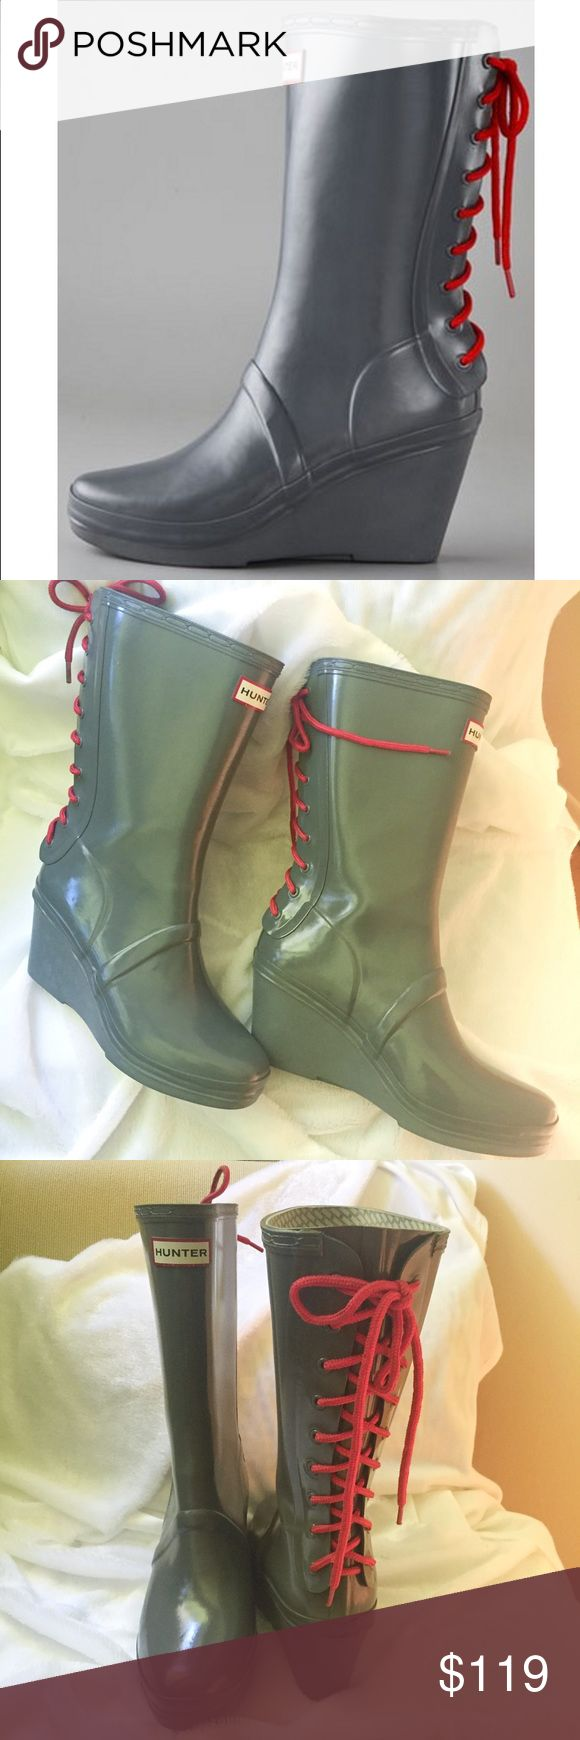 Hunter Verbier wedge boots laces rain gray red 9 Hunter boots in like new condition. Size 9. I was only able to find one little spot on the back of one boot as pictured- practically flawless. And check my bundle discount. 👇🏽 Hunter Boots Shoes Winter & Rain Boots